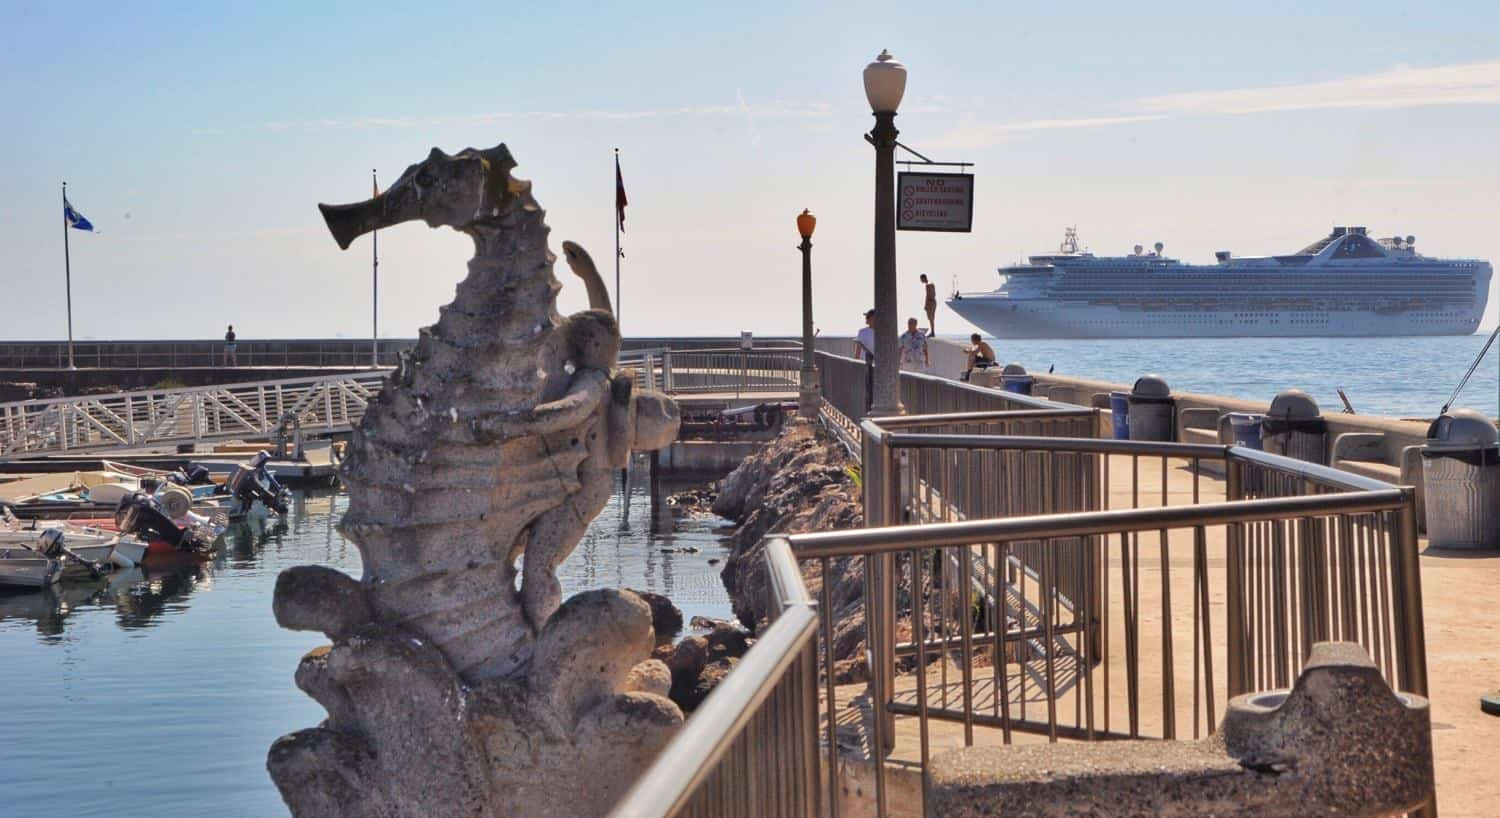 Seahorse sculpture in the harbor with docked boats and a cruise ship in the background